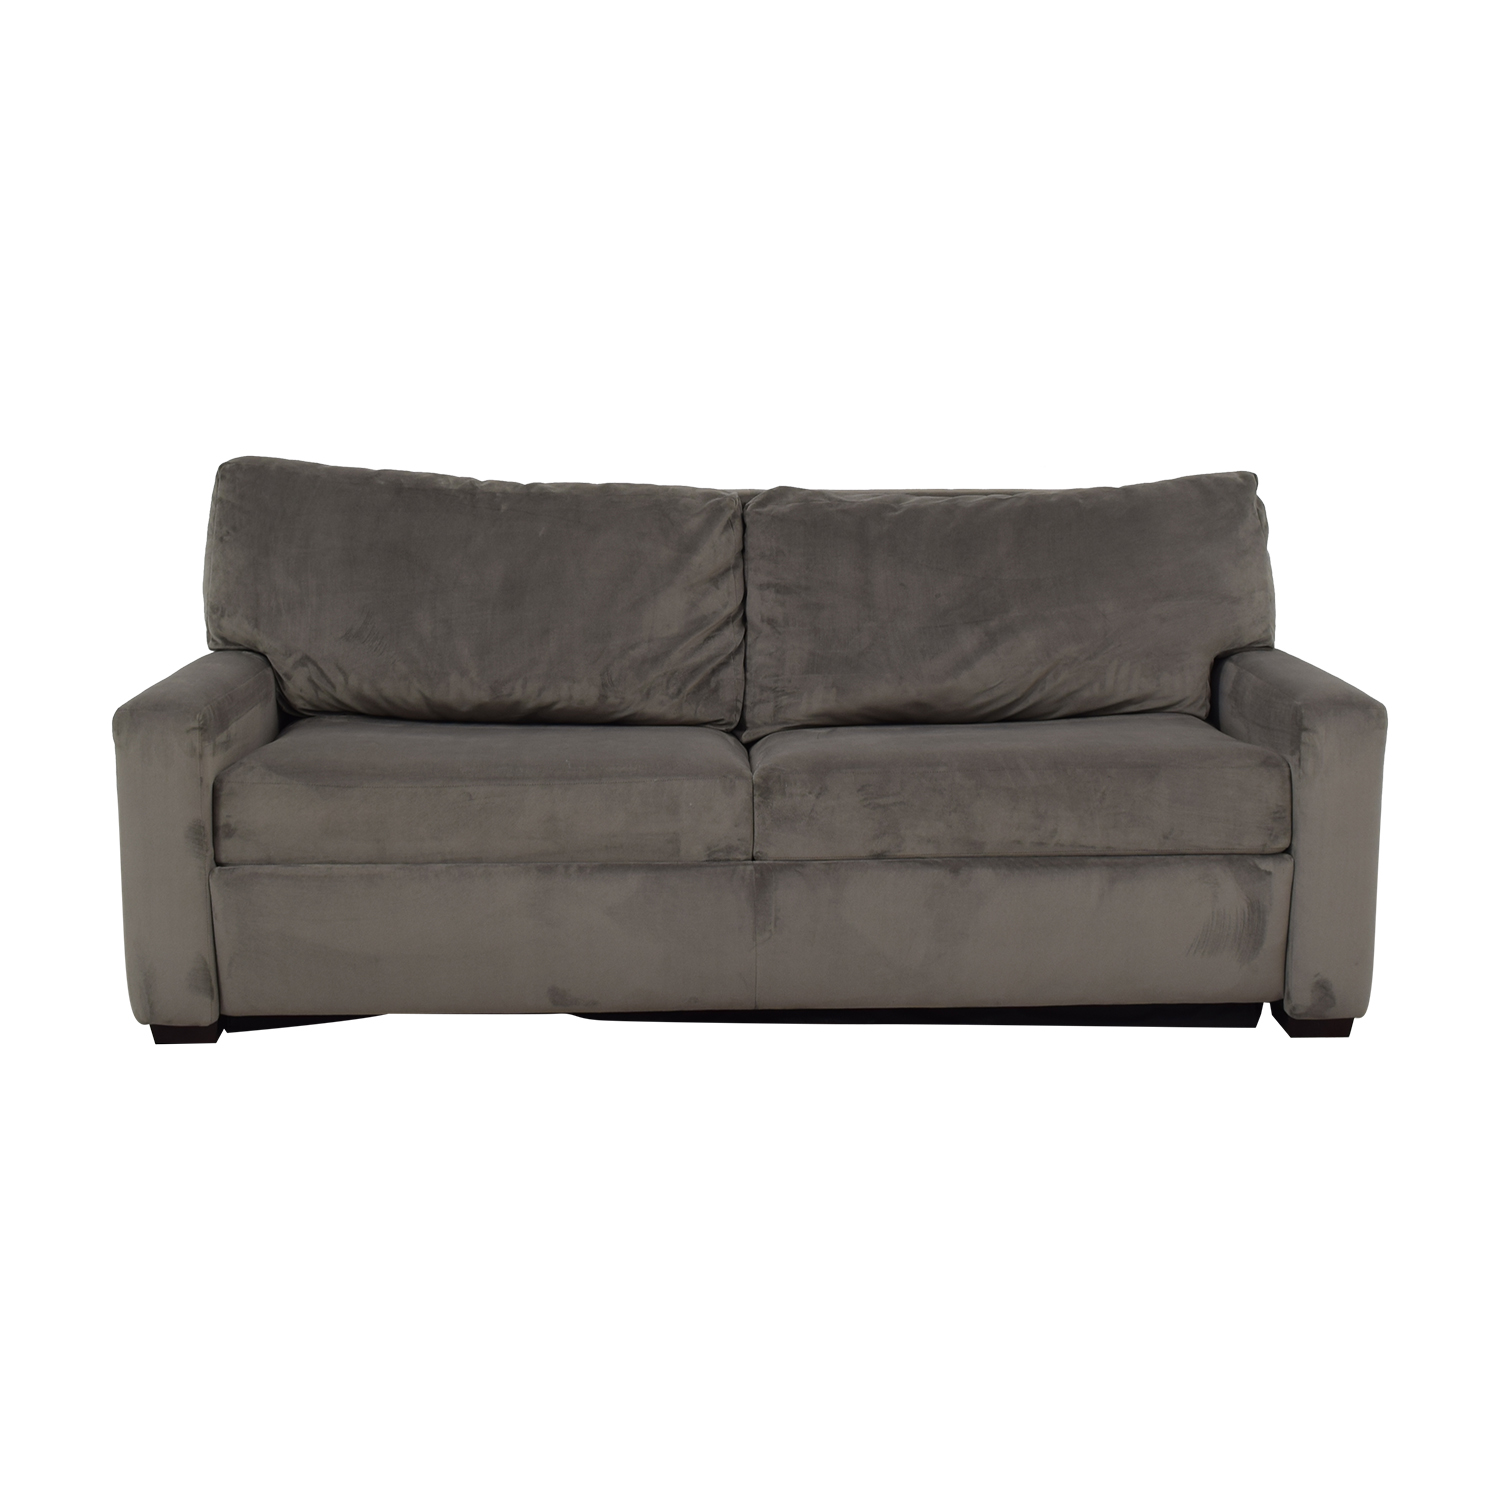 85 Off American Leather Cidy Comfort Queen Sleeper Sofa Sofas